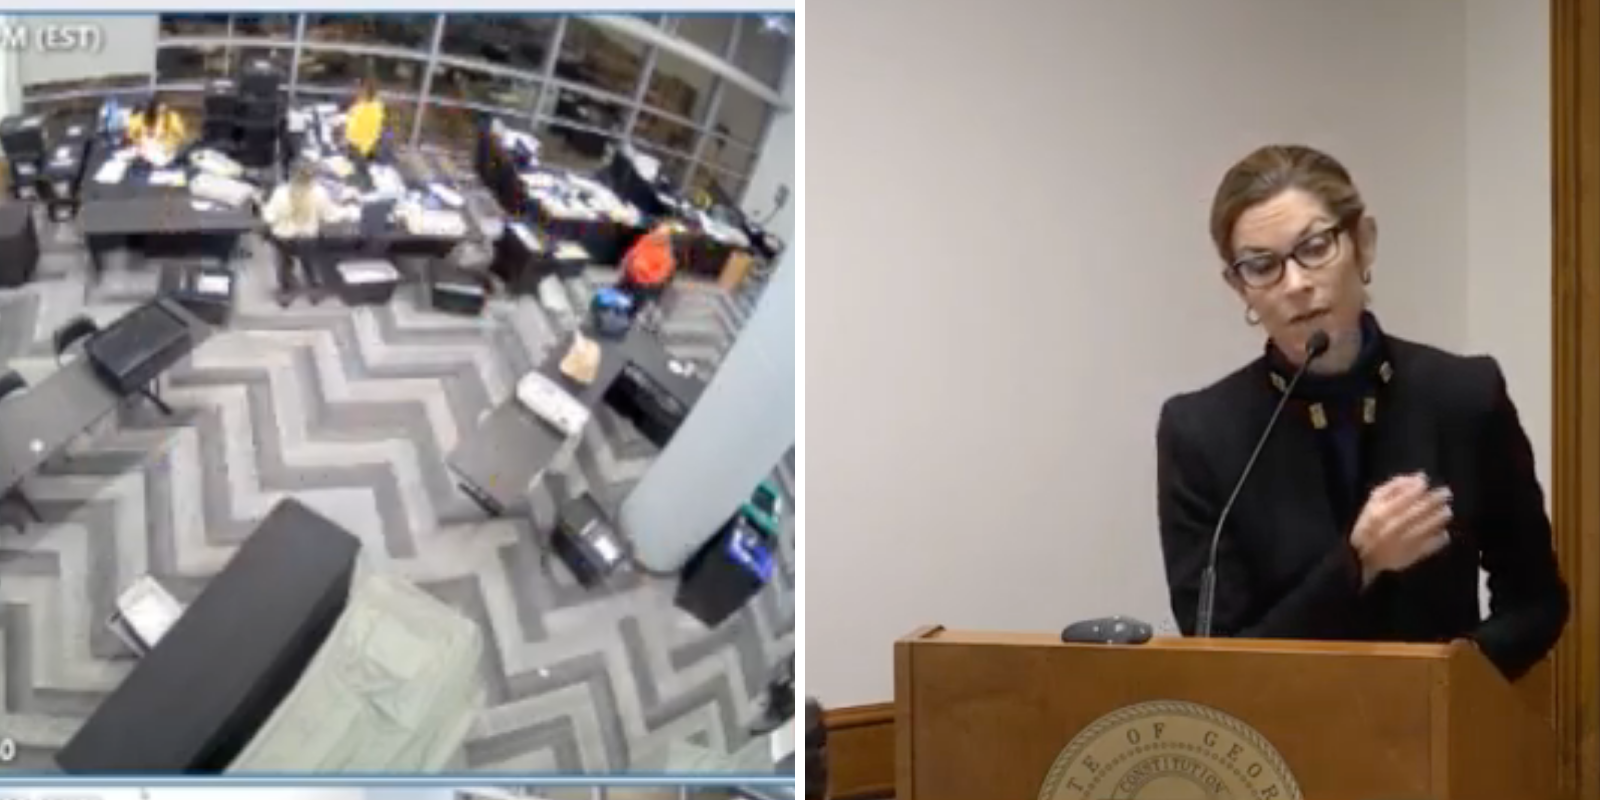 WATCH: Georgia voter fraud hearing features explosive allegations of ballot stuffing, corrupt supervisor